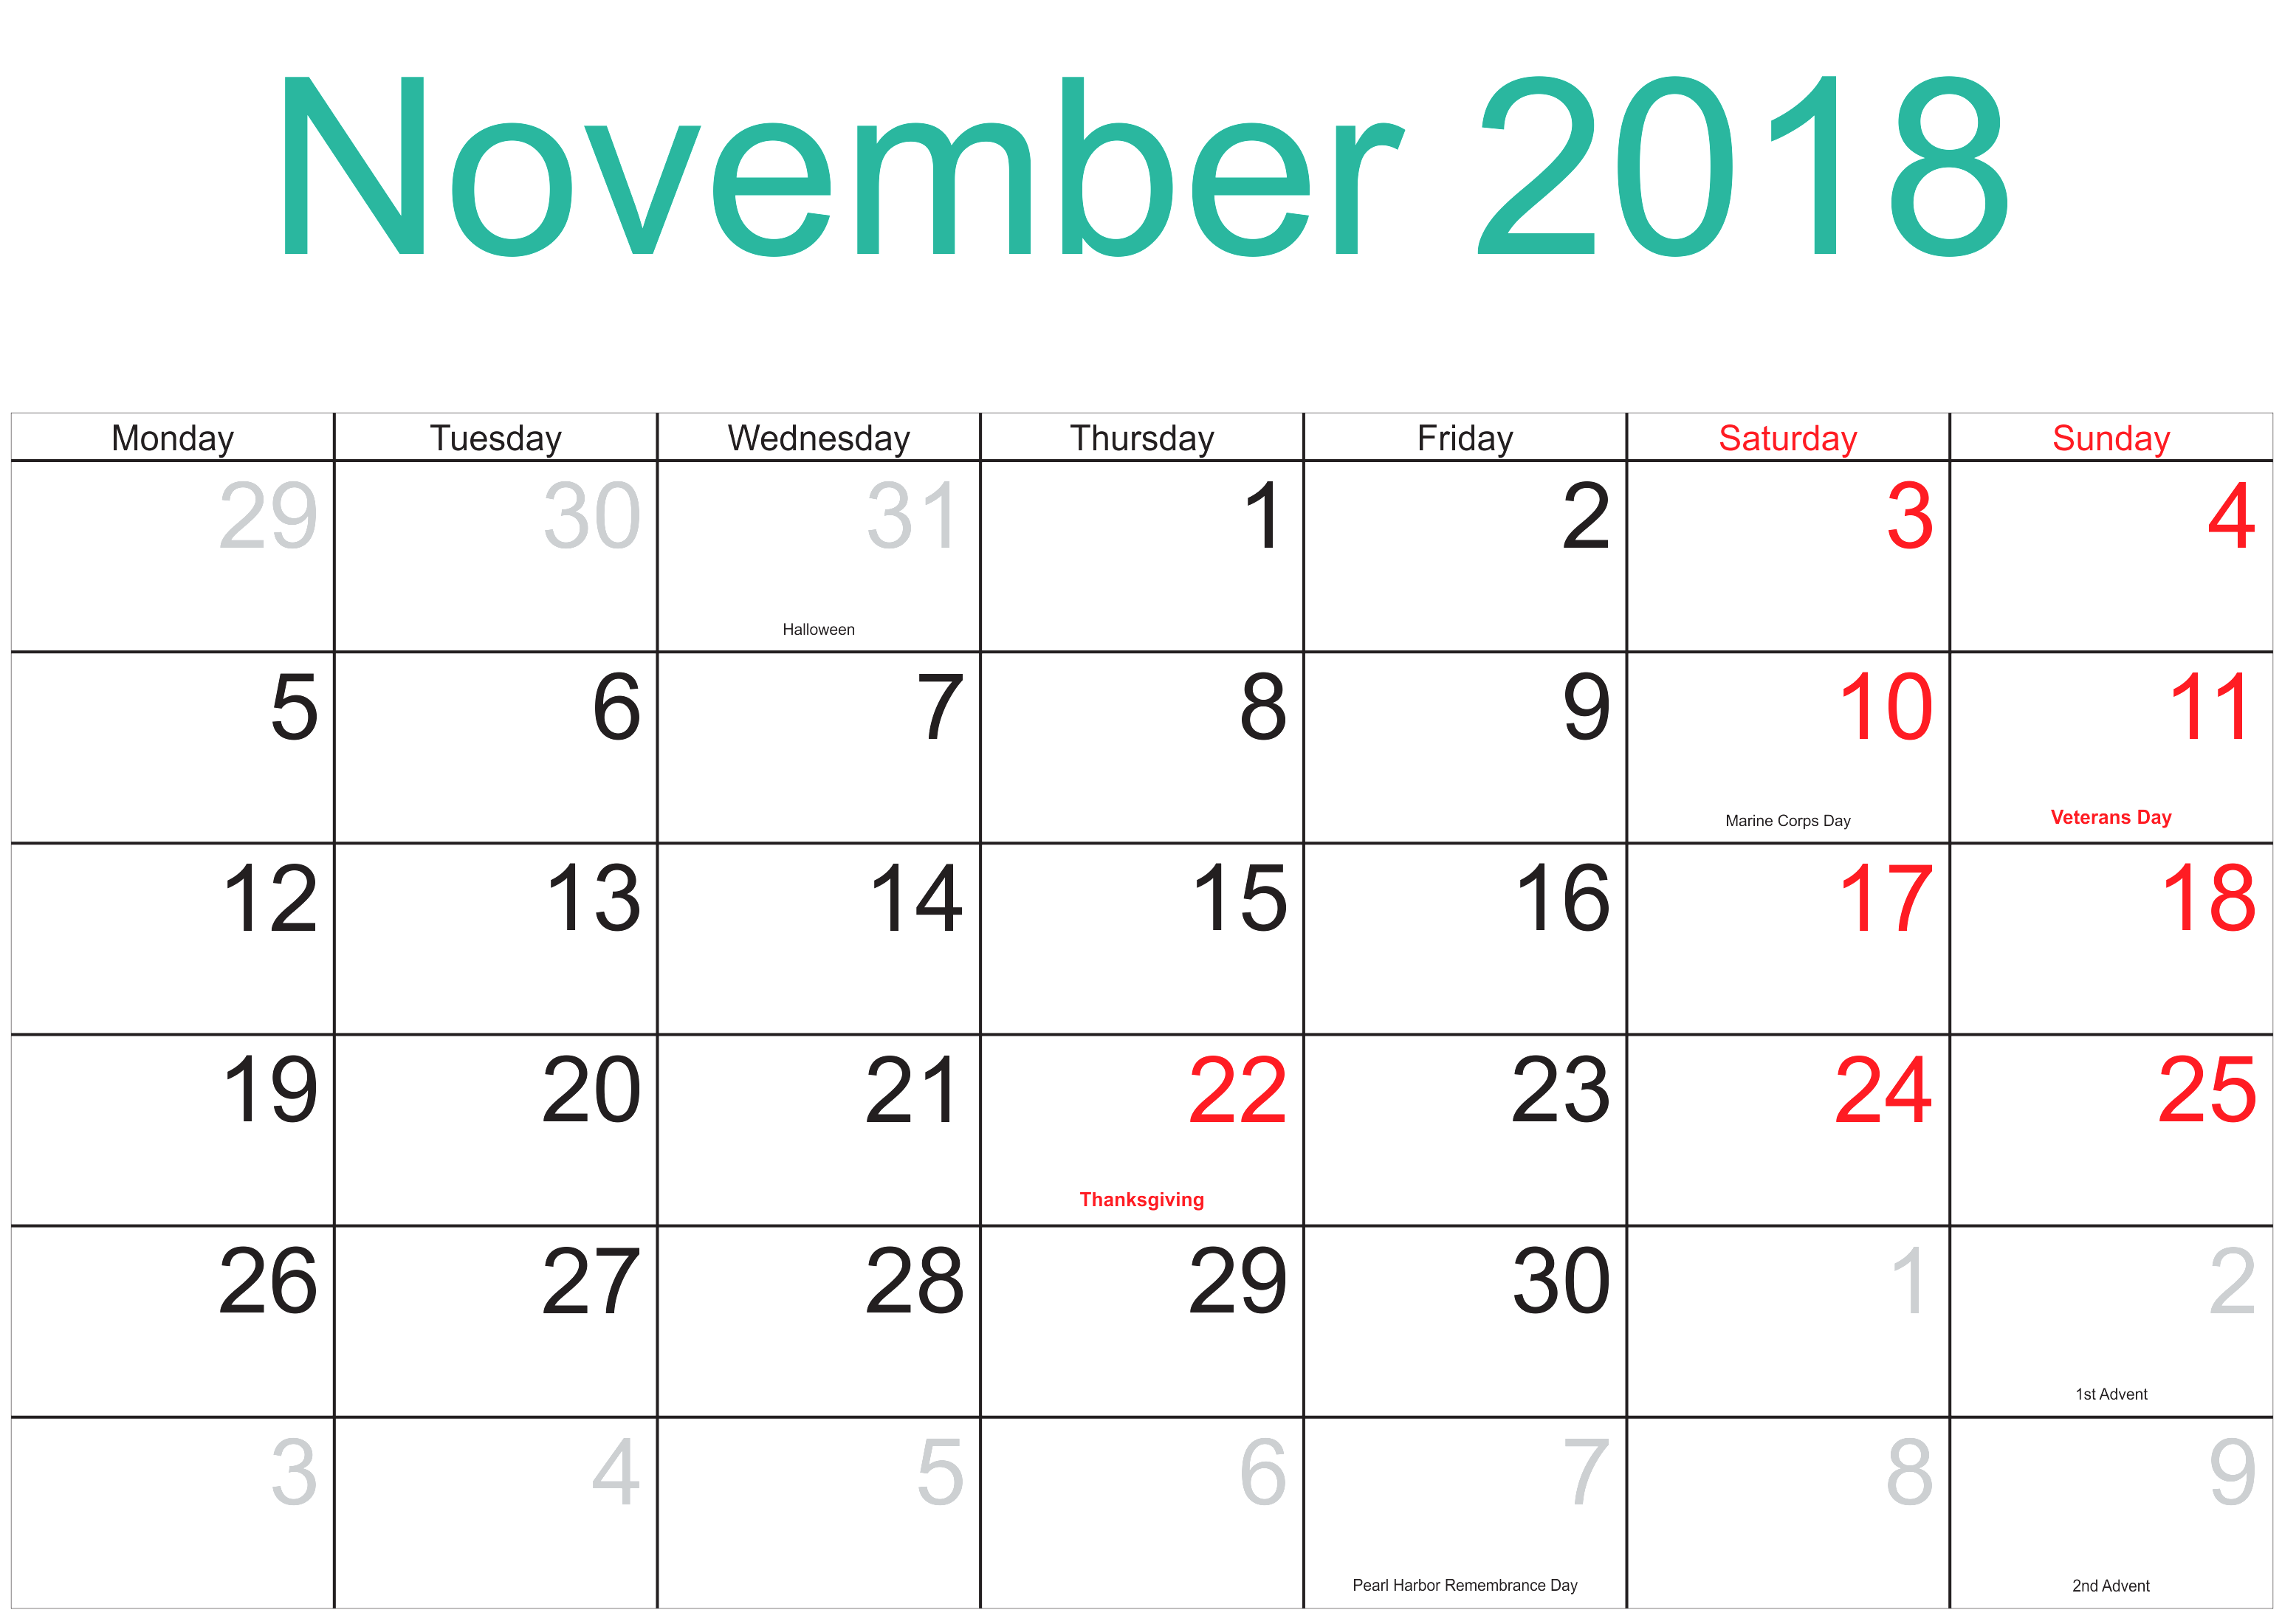 November 2018 Calendar Word With Holidays